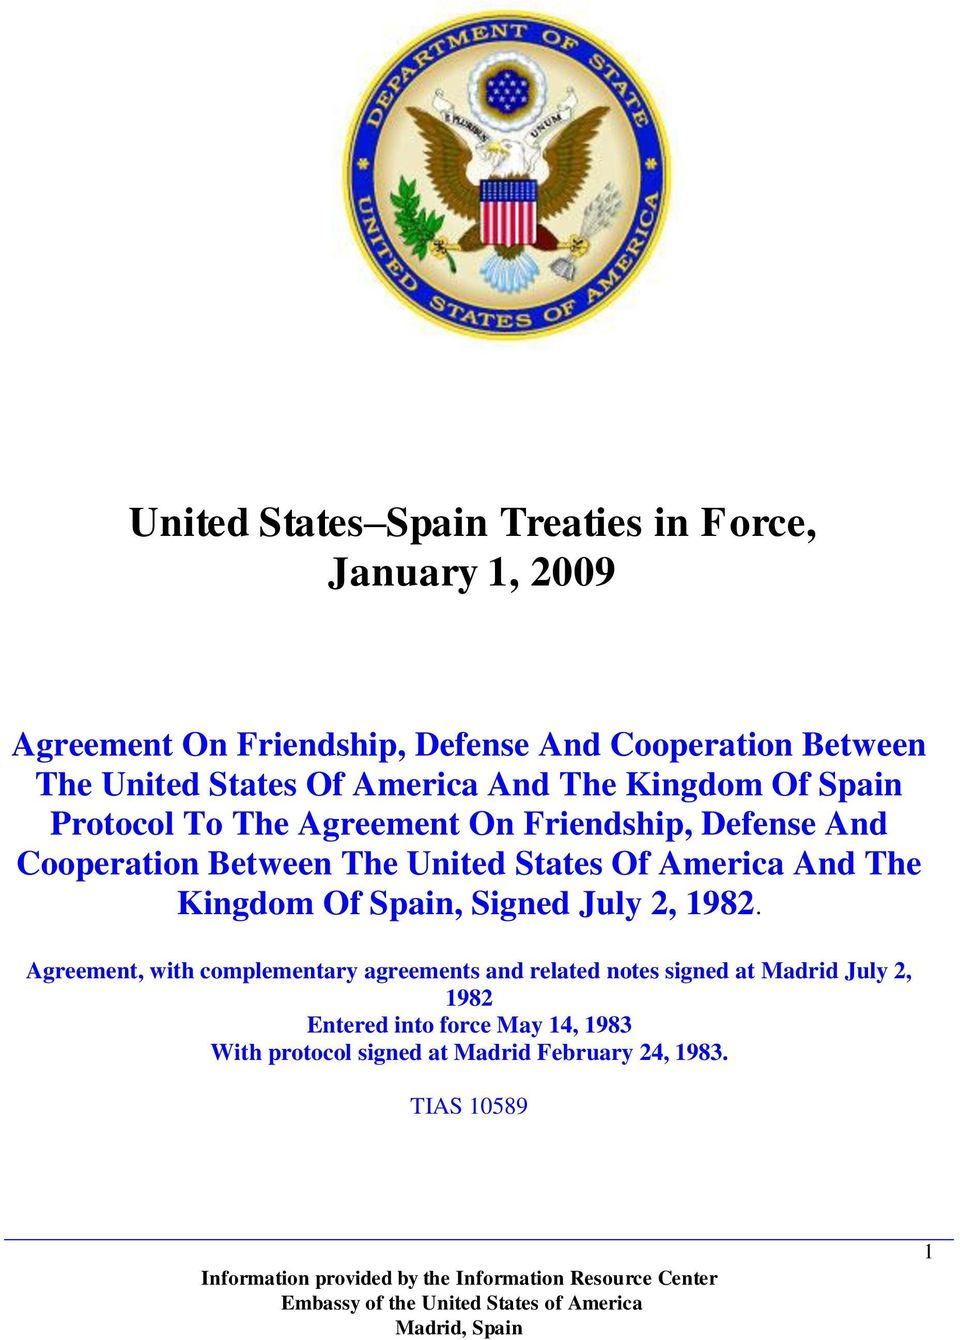 Agreement, with complementary agreements and related notes signed at Madrid July 2, 1982 Entered into force